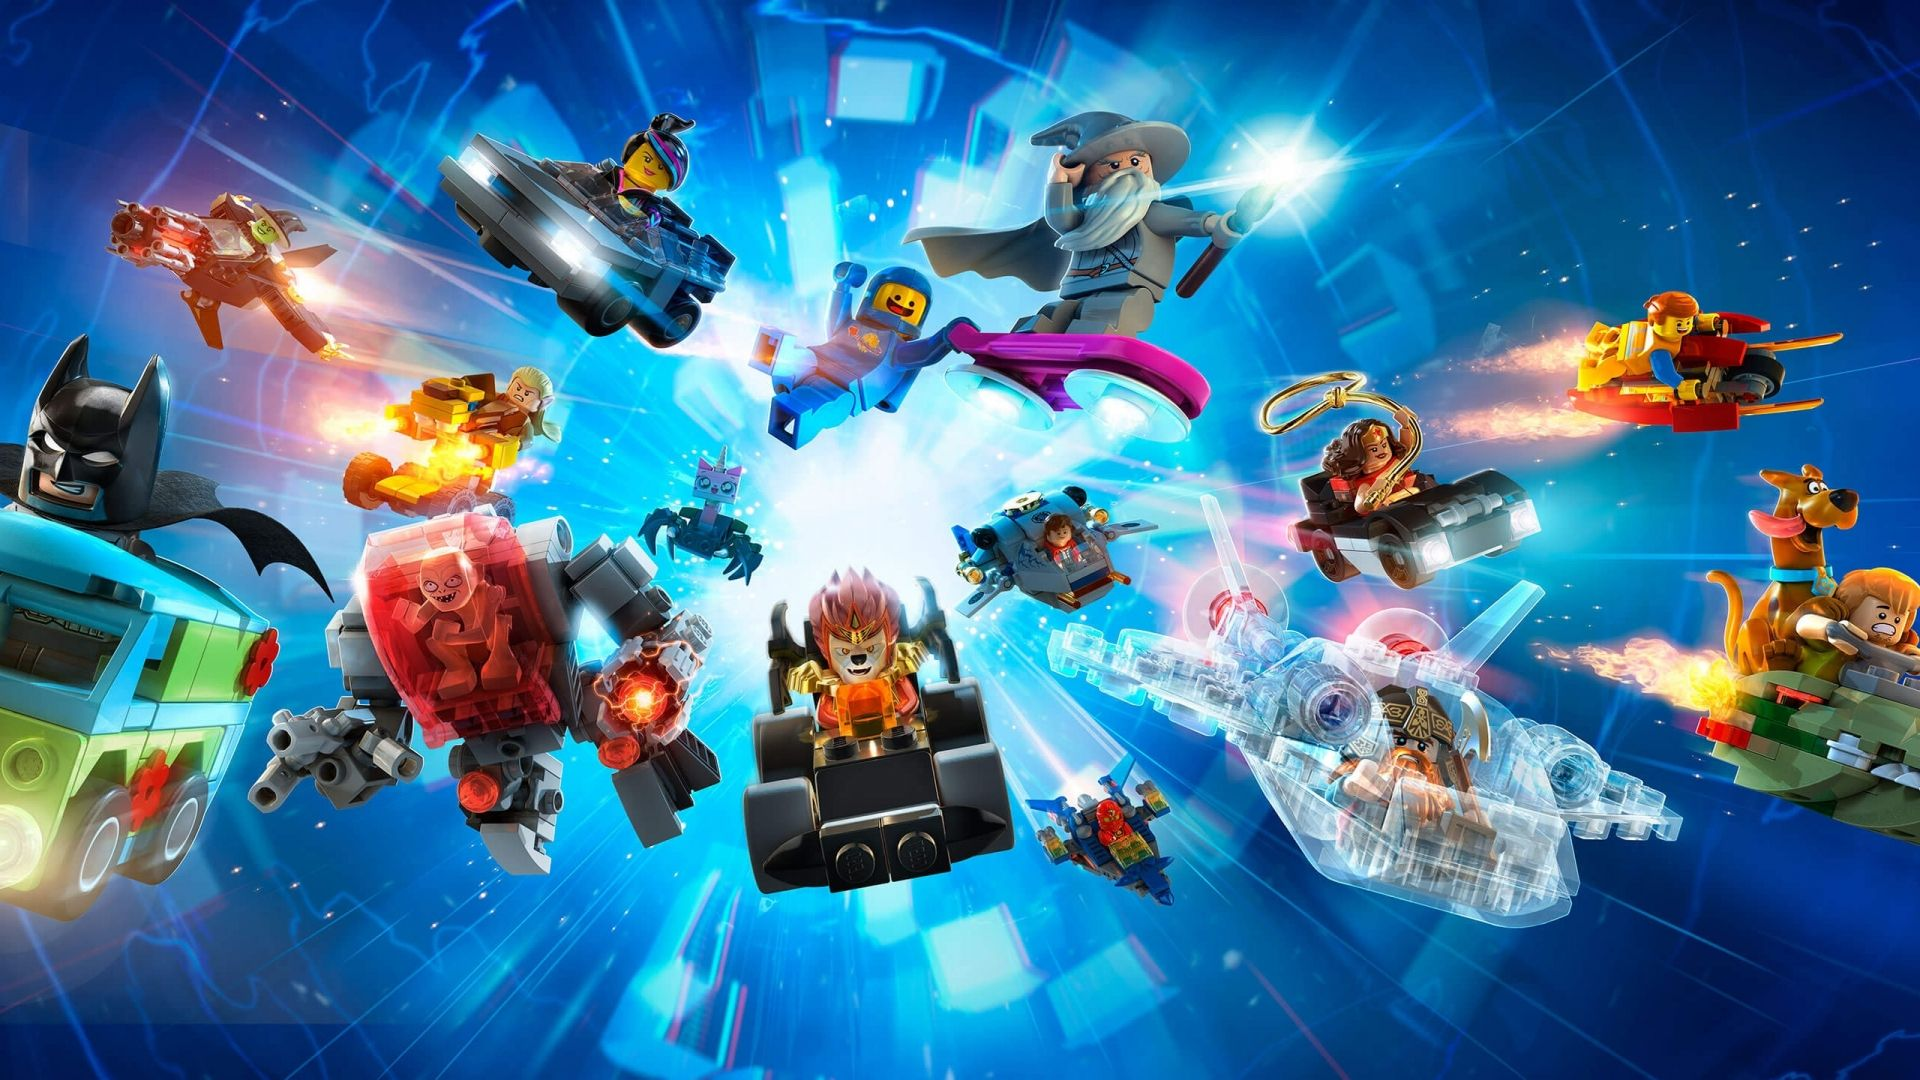 Lego Dimensions Wallpapers Top Free Lego Dimensions Backgrounds Wallpaperaccess